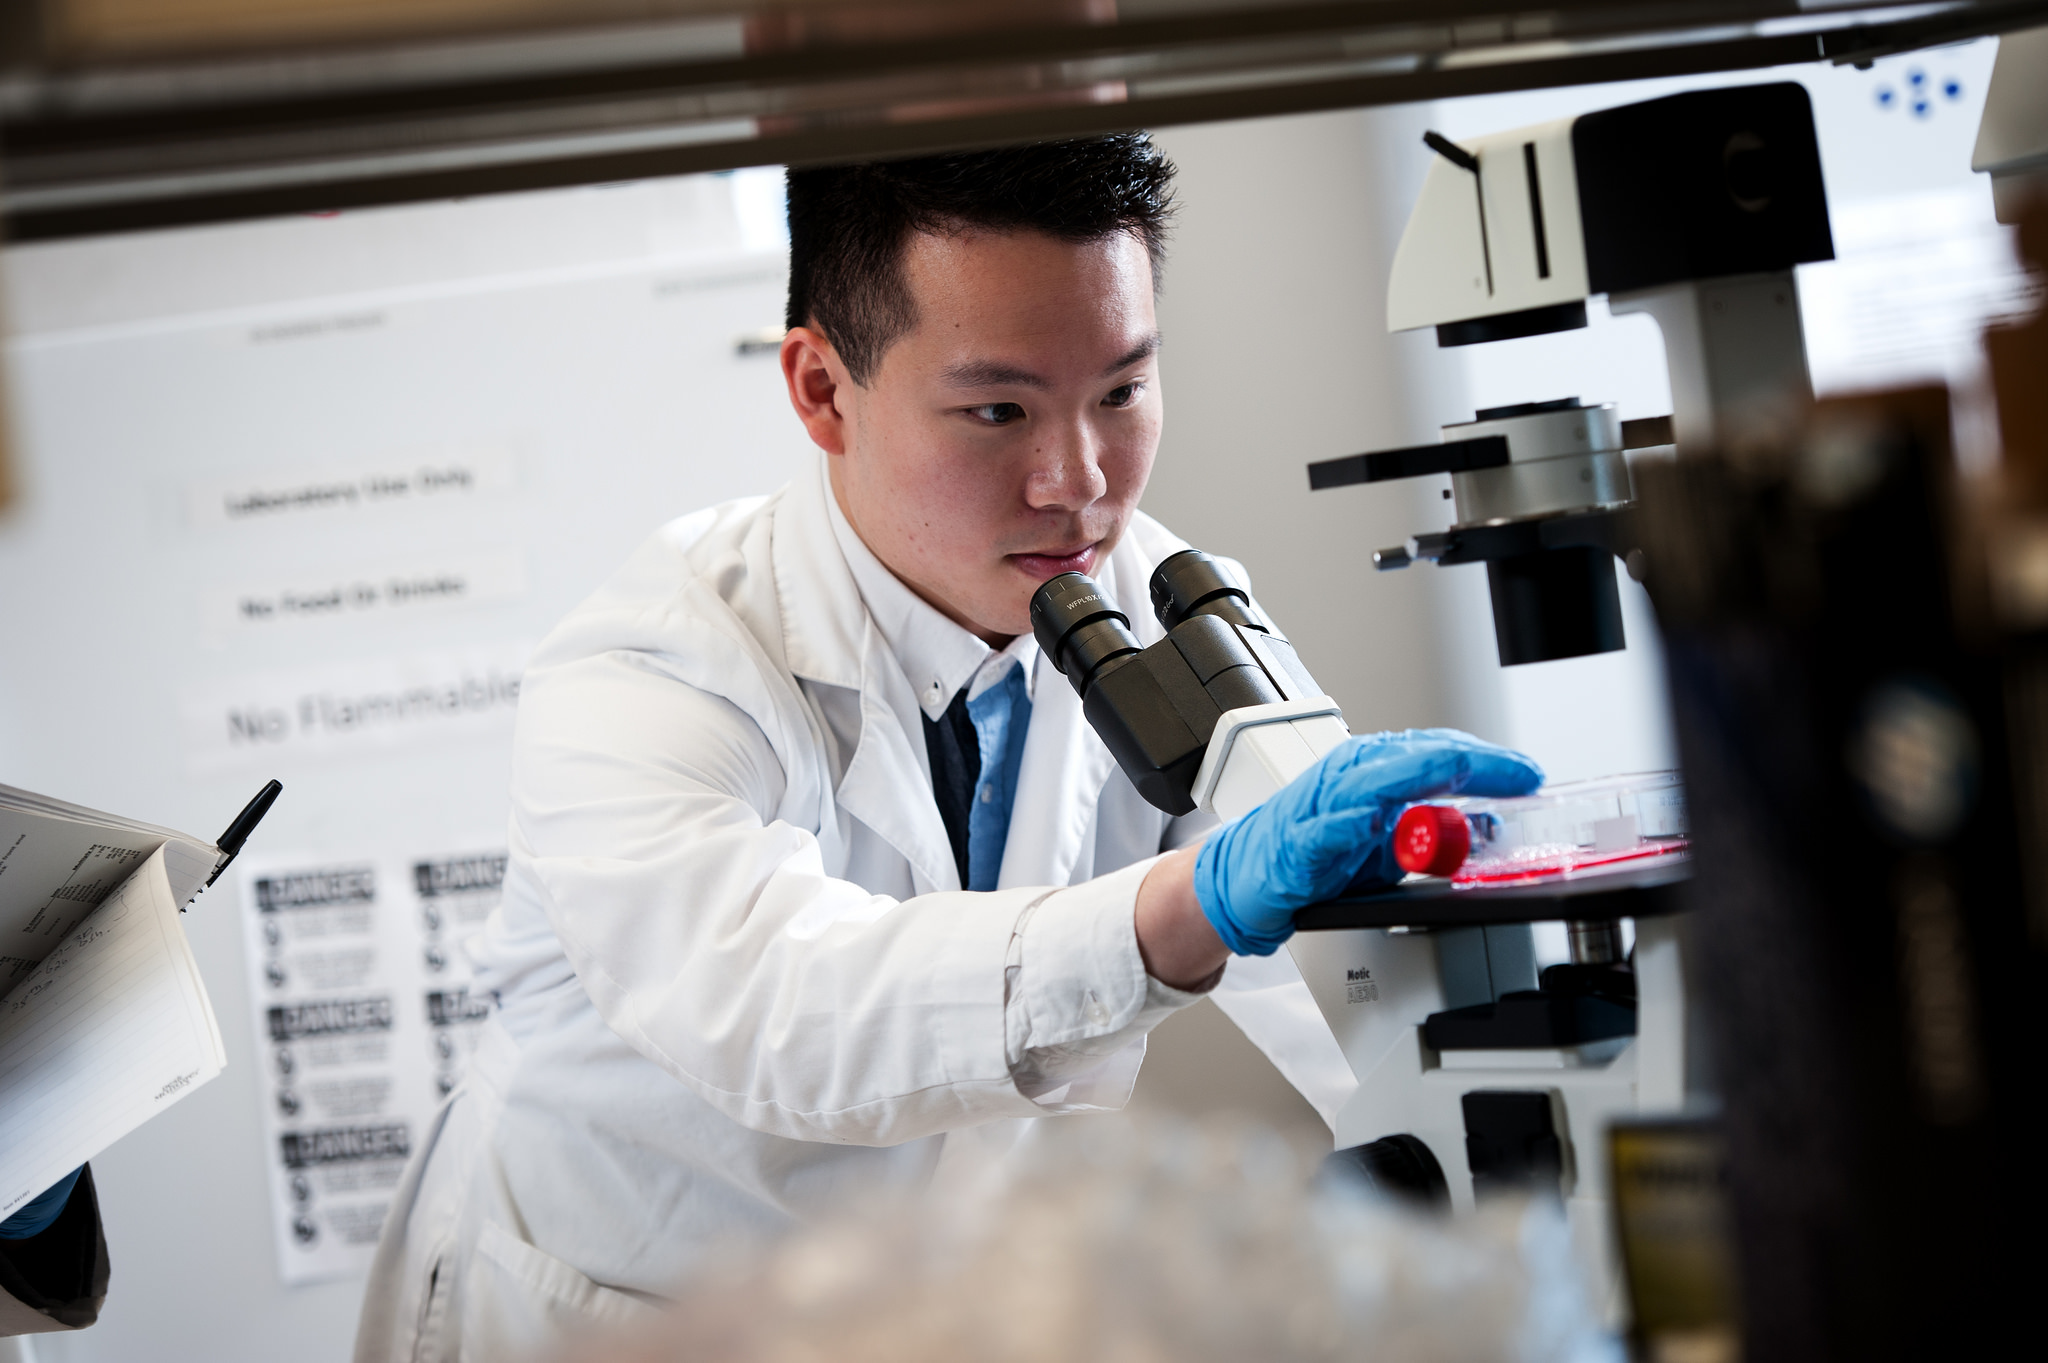 man in white lab coat works with a microscope